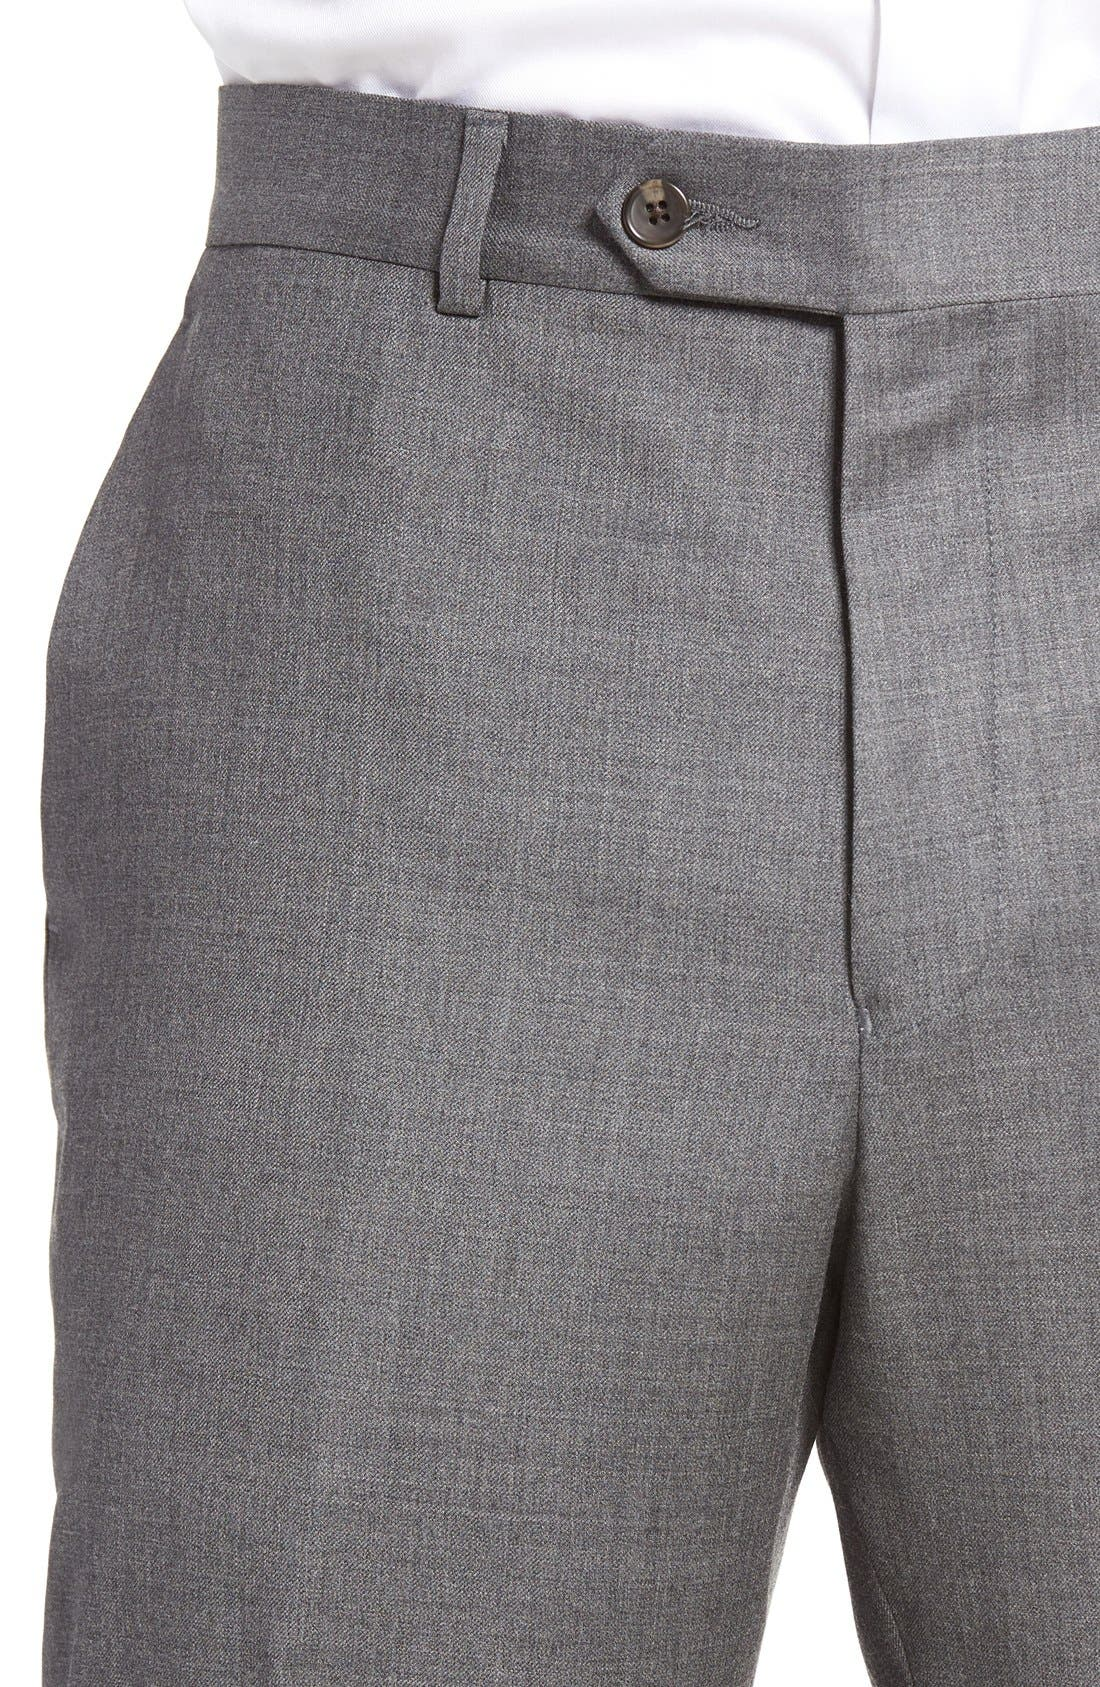 Dagger Flat Front Solid Wool Trousers,                             Alternate thumbnail 4, color,                             030